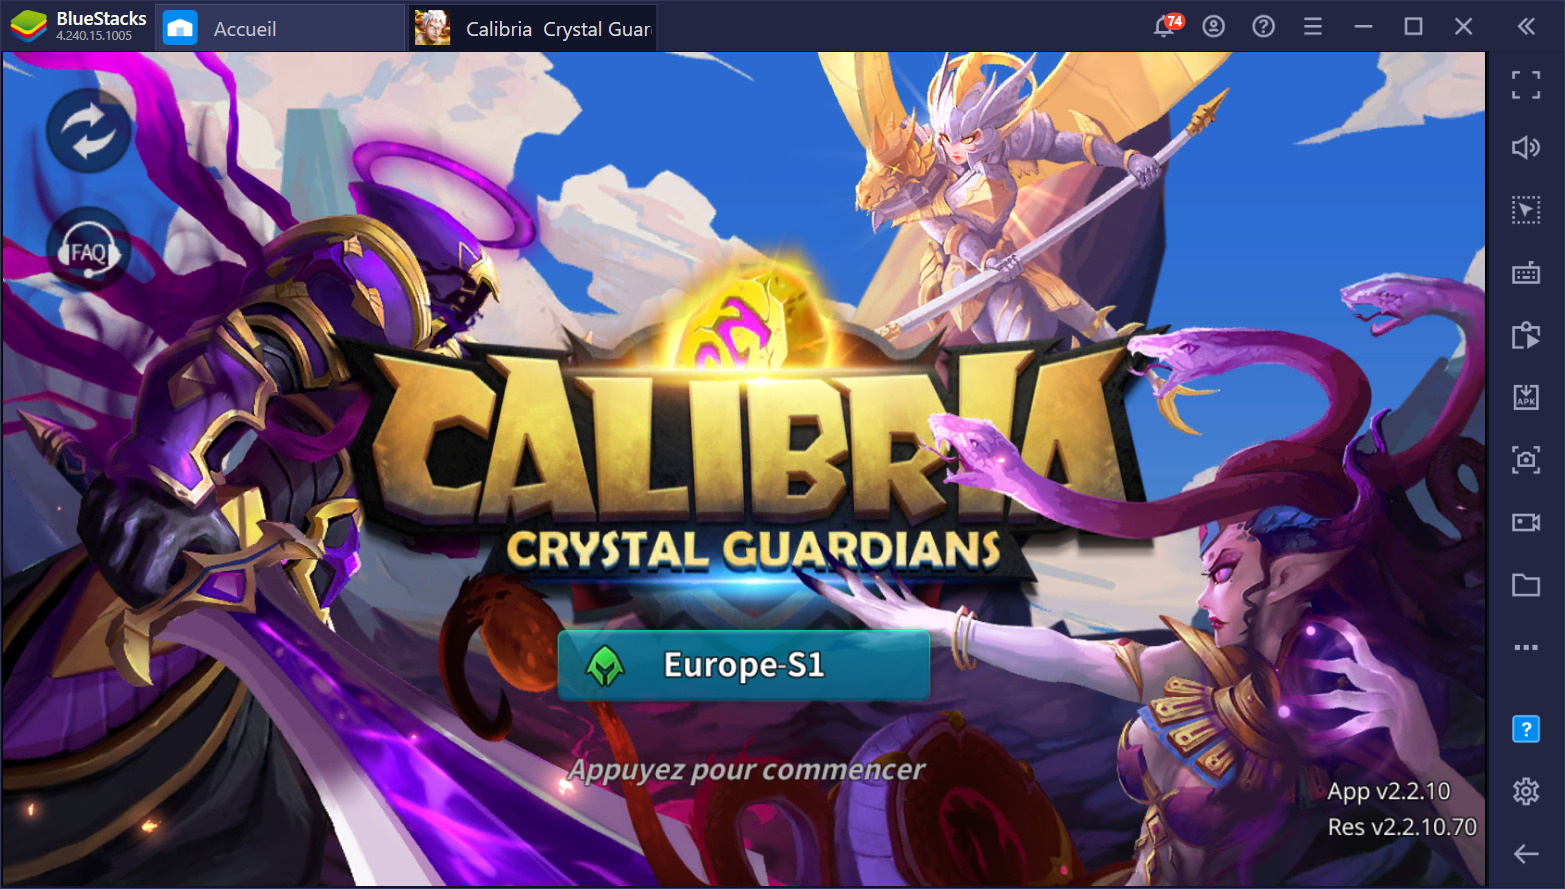 Comment jouer à Calibria : Crystal Guardians sur PC avec BlueStacks